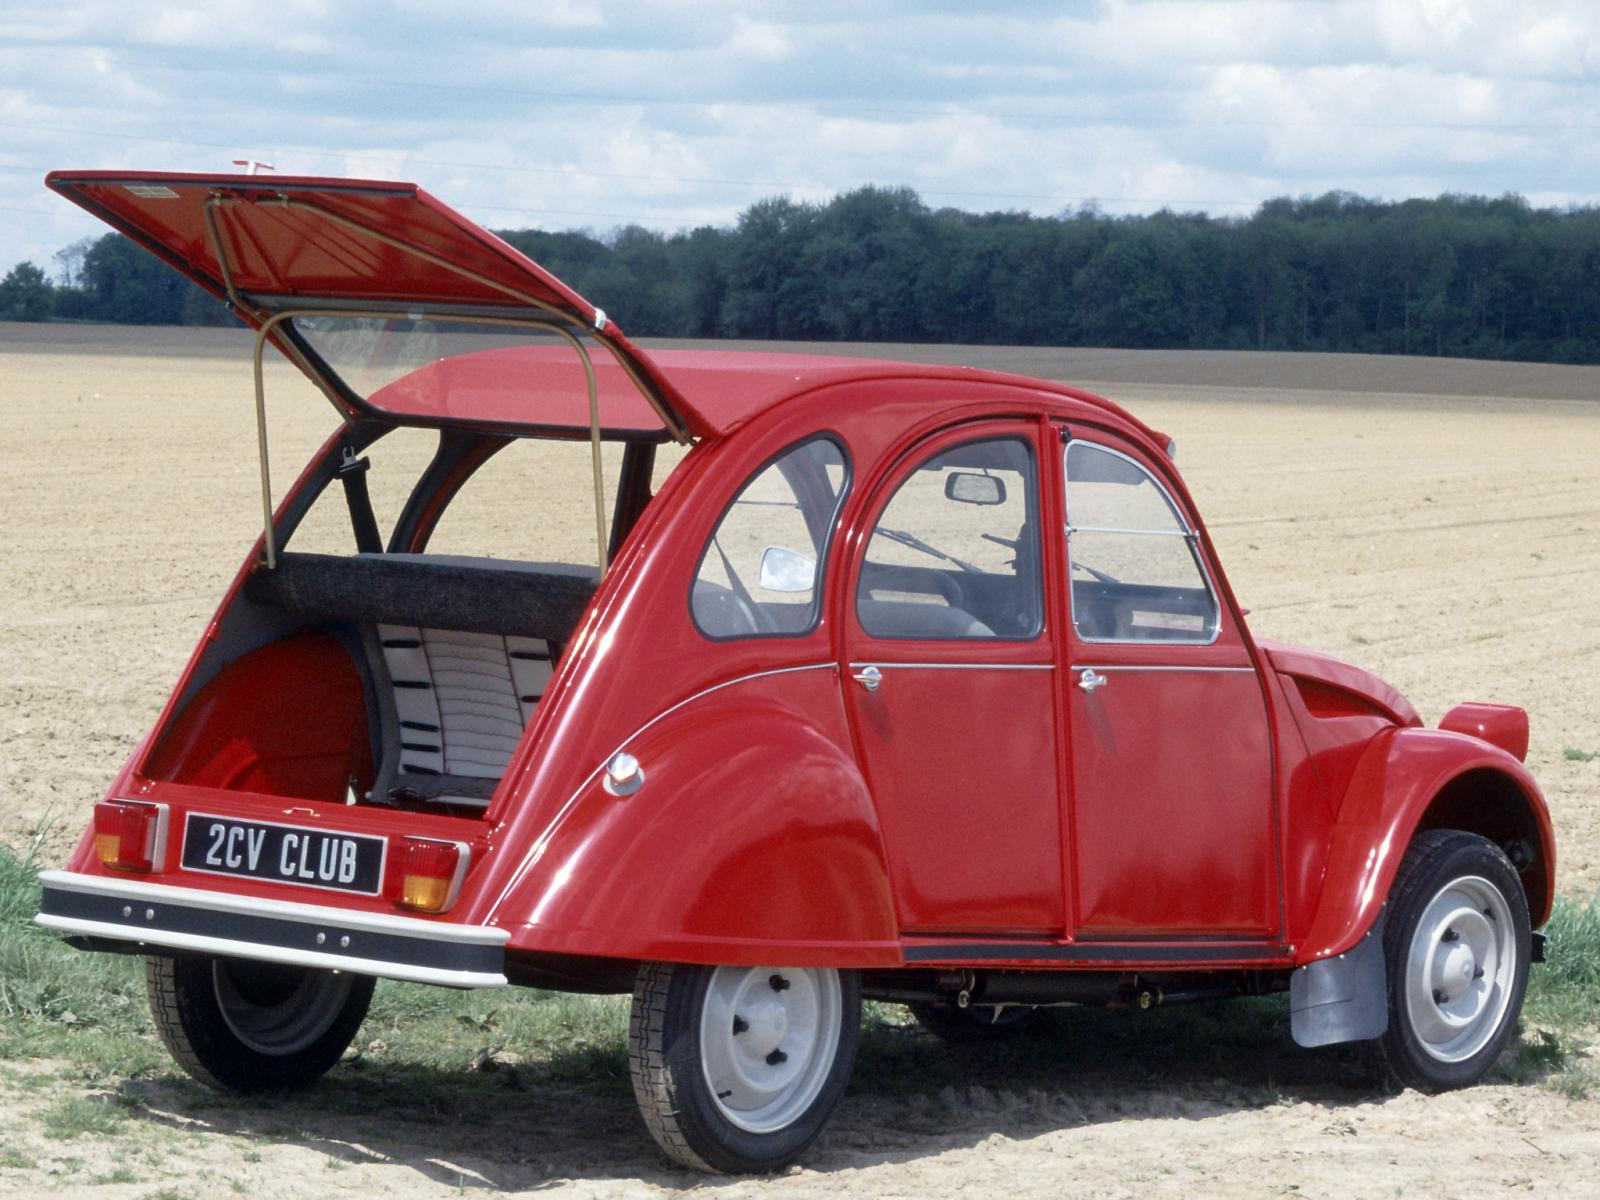 2CV6 Club 1984 boot opened